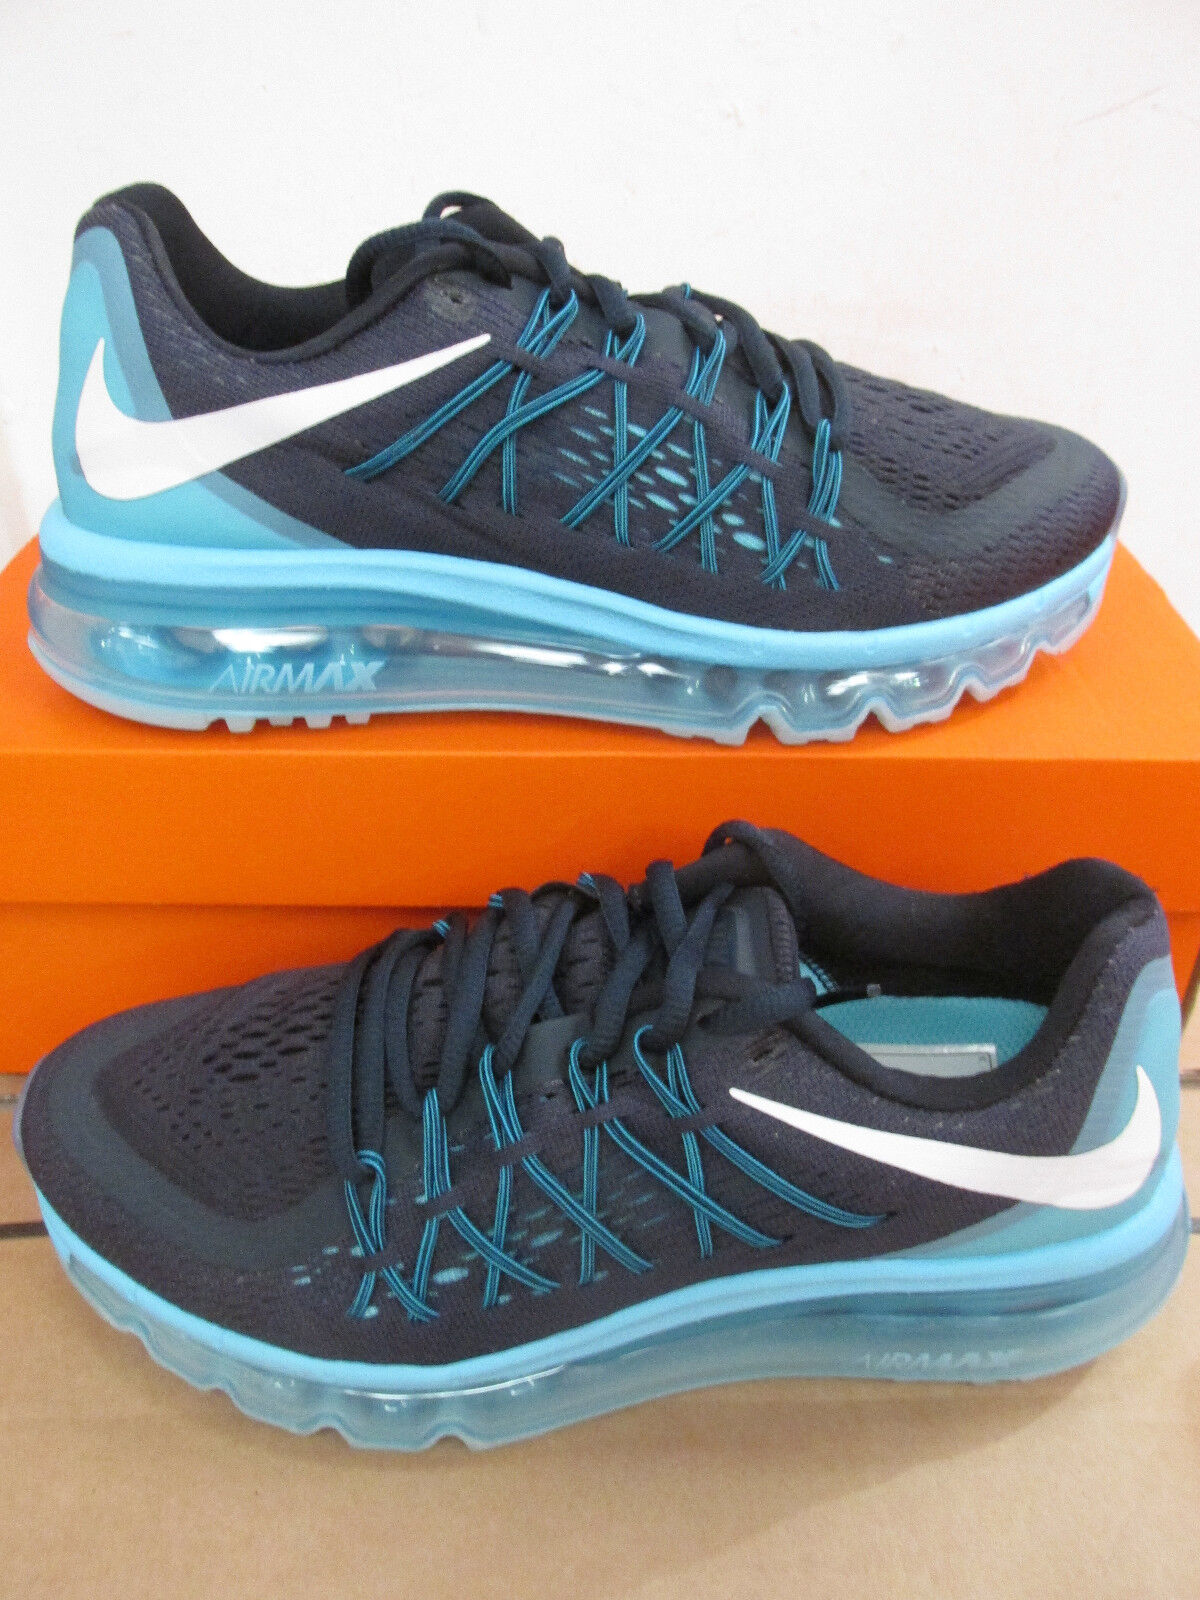 Nike air max 2015 womens running trainers 698903 404 sneakers shoes CLEARANCE